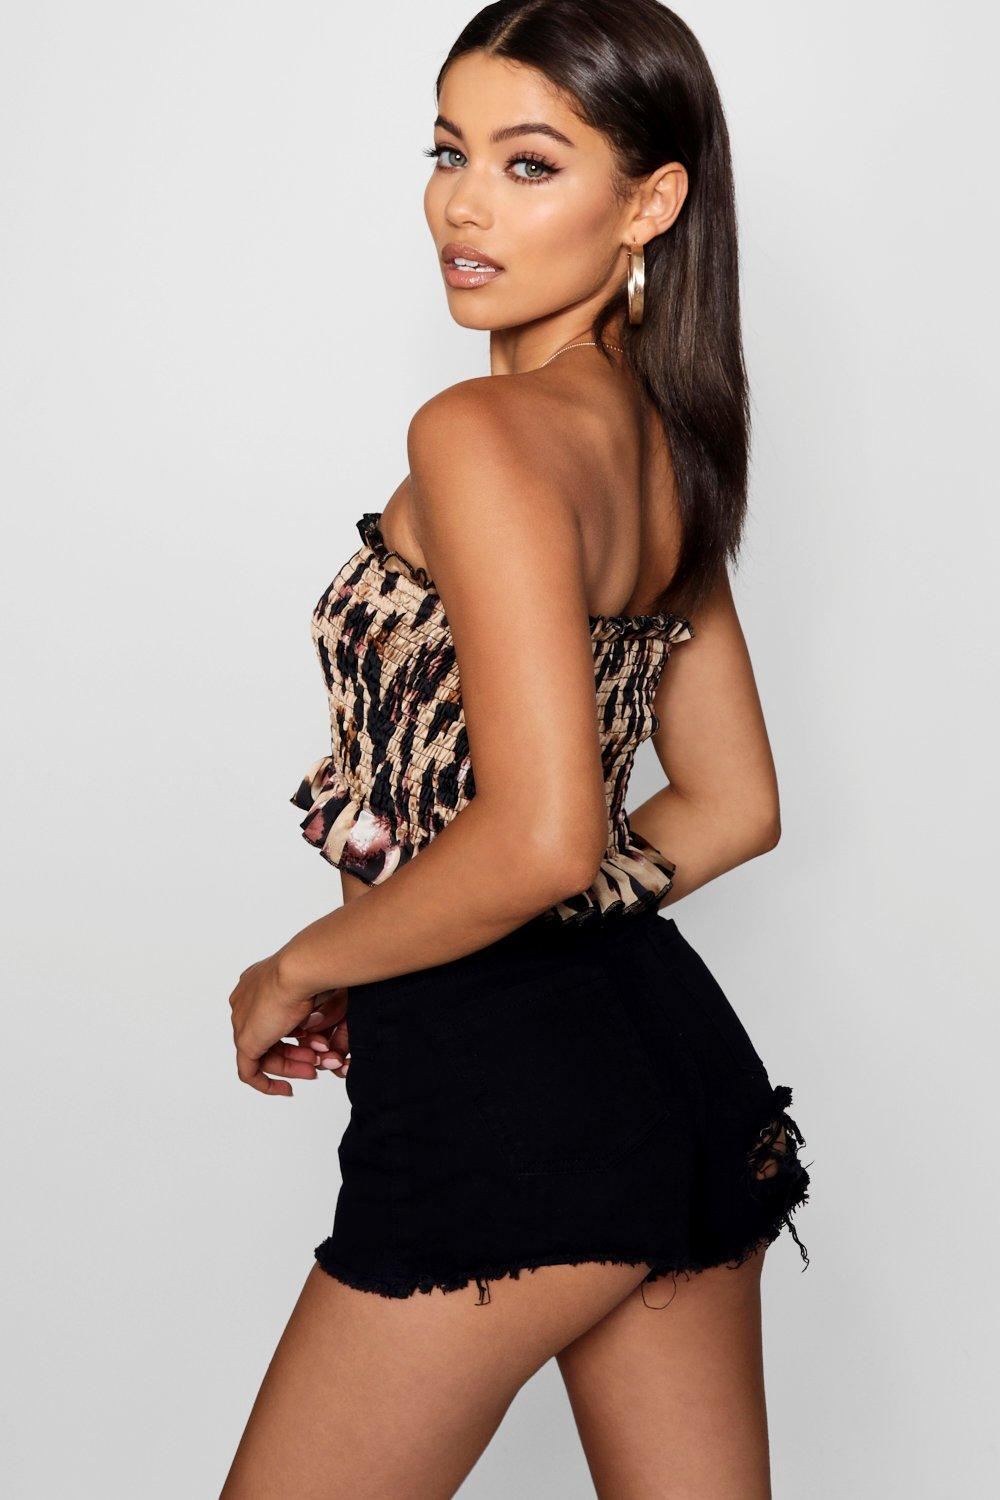 Boohoo Leopard Shirred Bandeau Prices Online Manchester Great Sale Online Buy Cheap 2018 New wNsafNqtVW